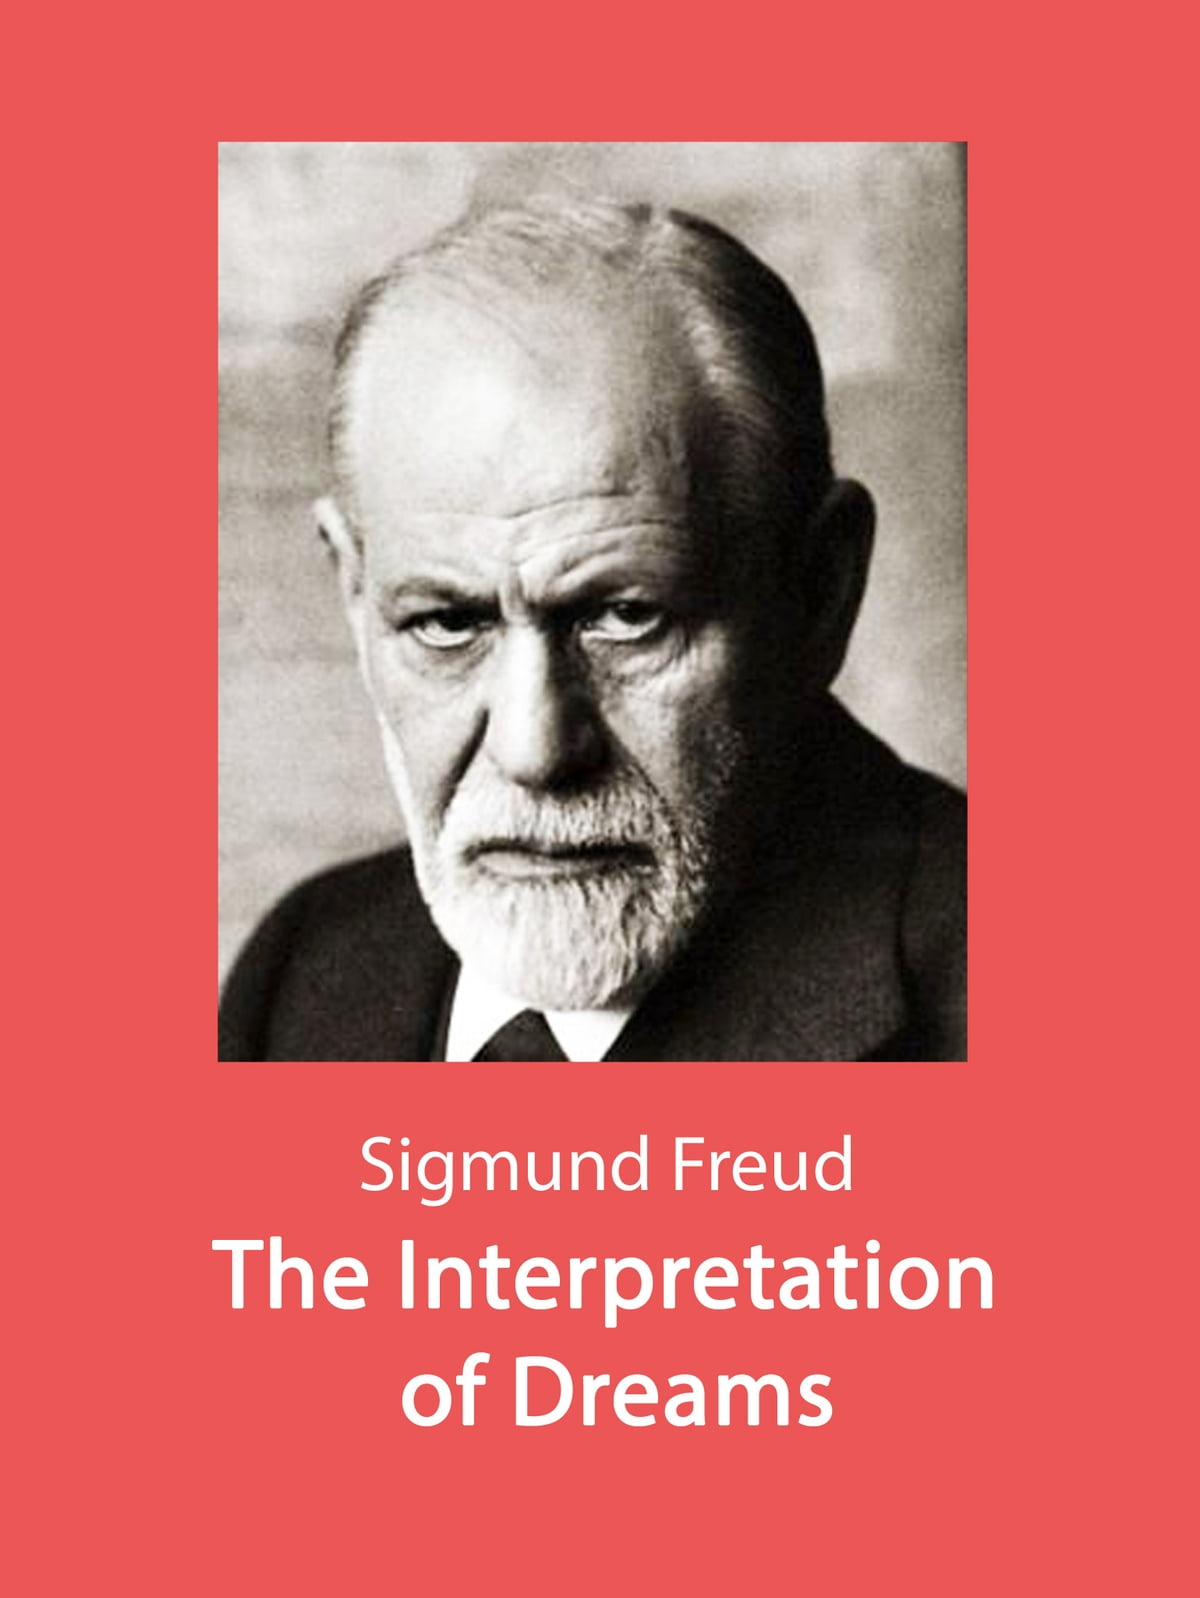 Sigmund Freud Libros The Interpretation Of Dreams Ebook By Sigmund Freud Rakuten Kobo